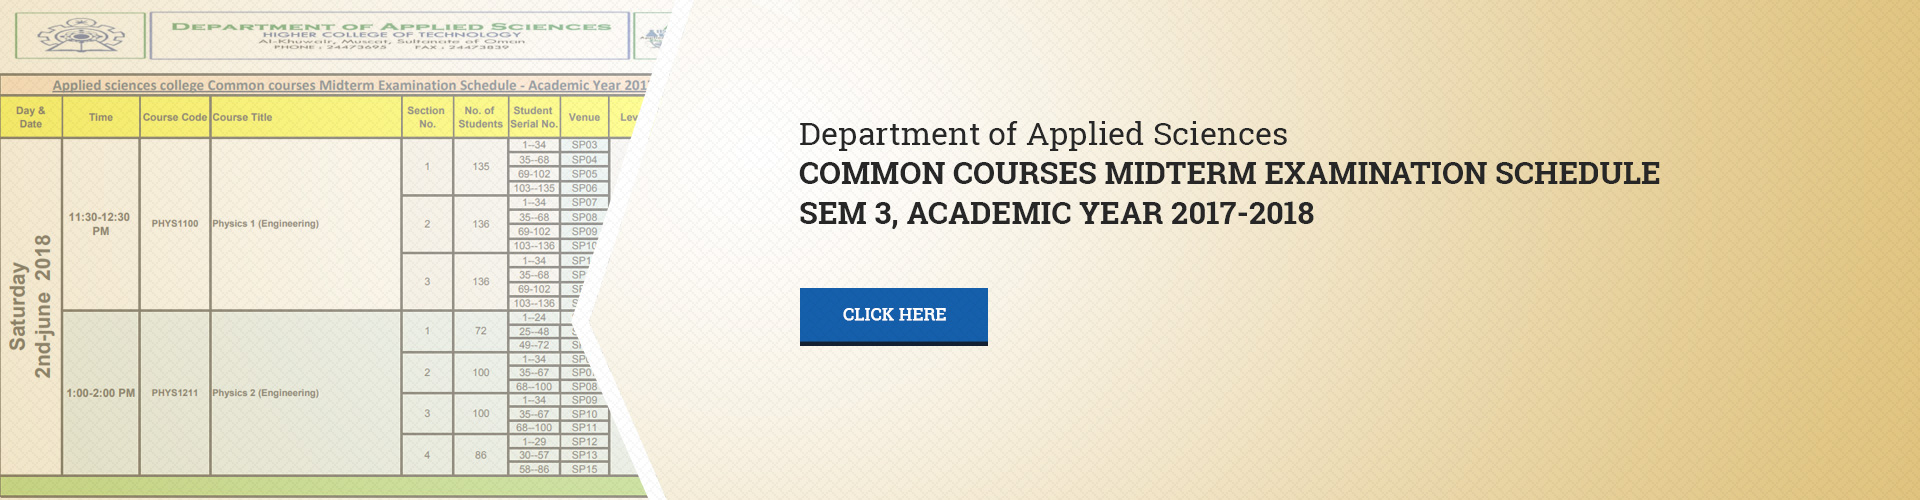 Applied Sciences Department - Common Courses Midterm Examination, Semester 3 AY 2017-2018